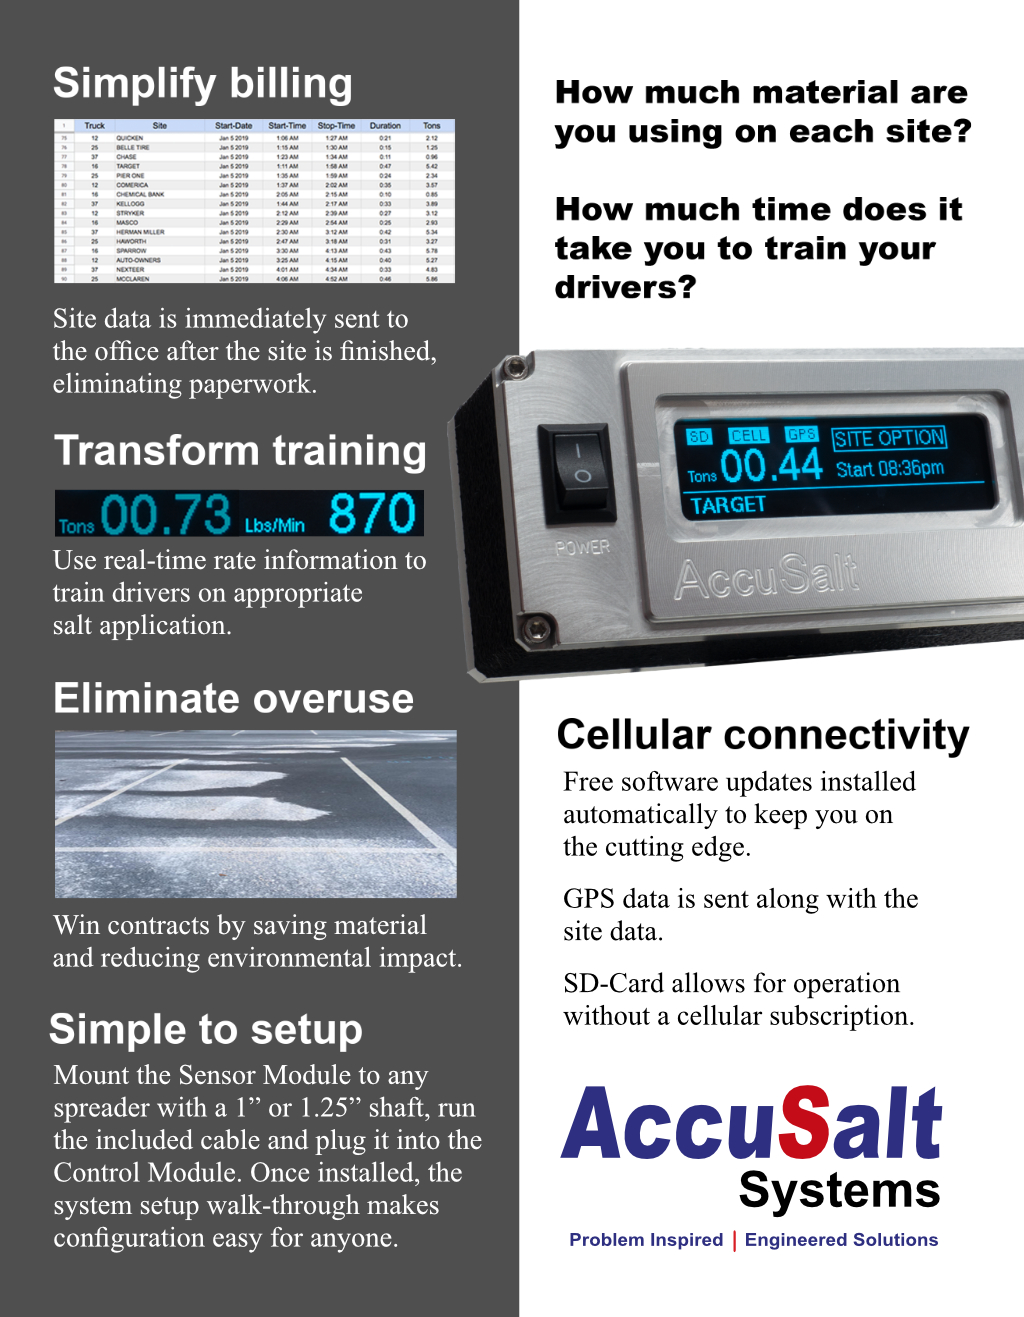 The Accusalt is a great tool that is cellularly connected so the data can be sent back to the office.